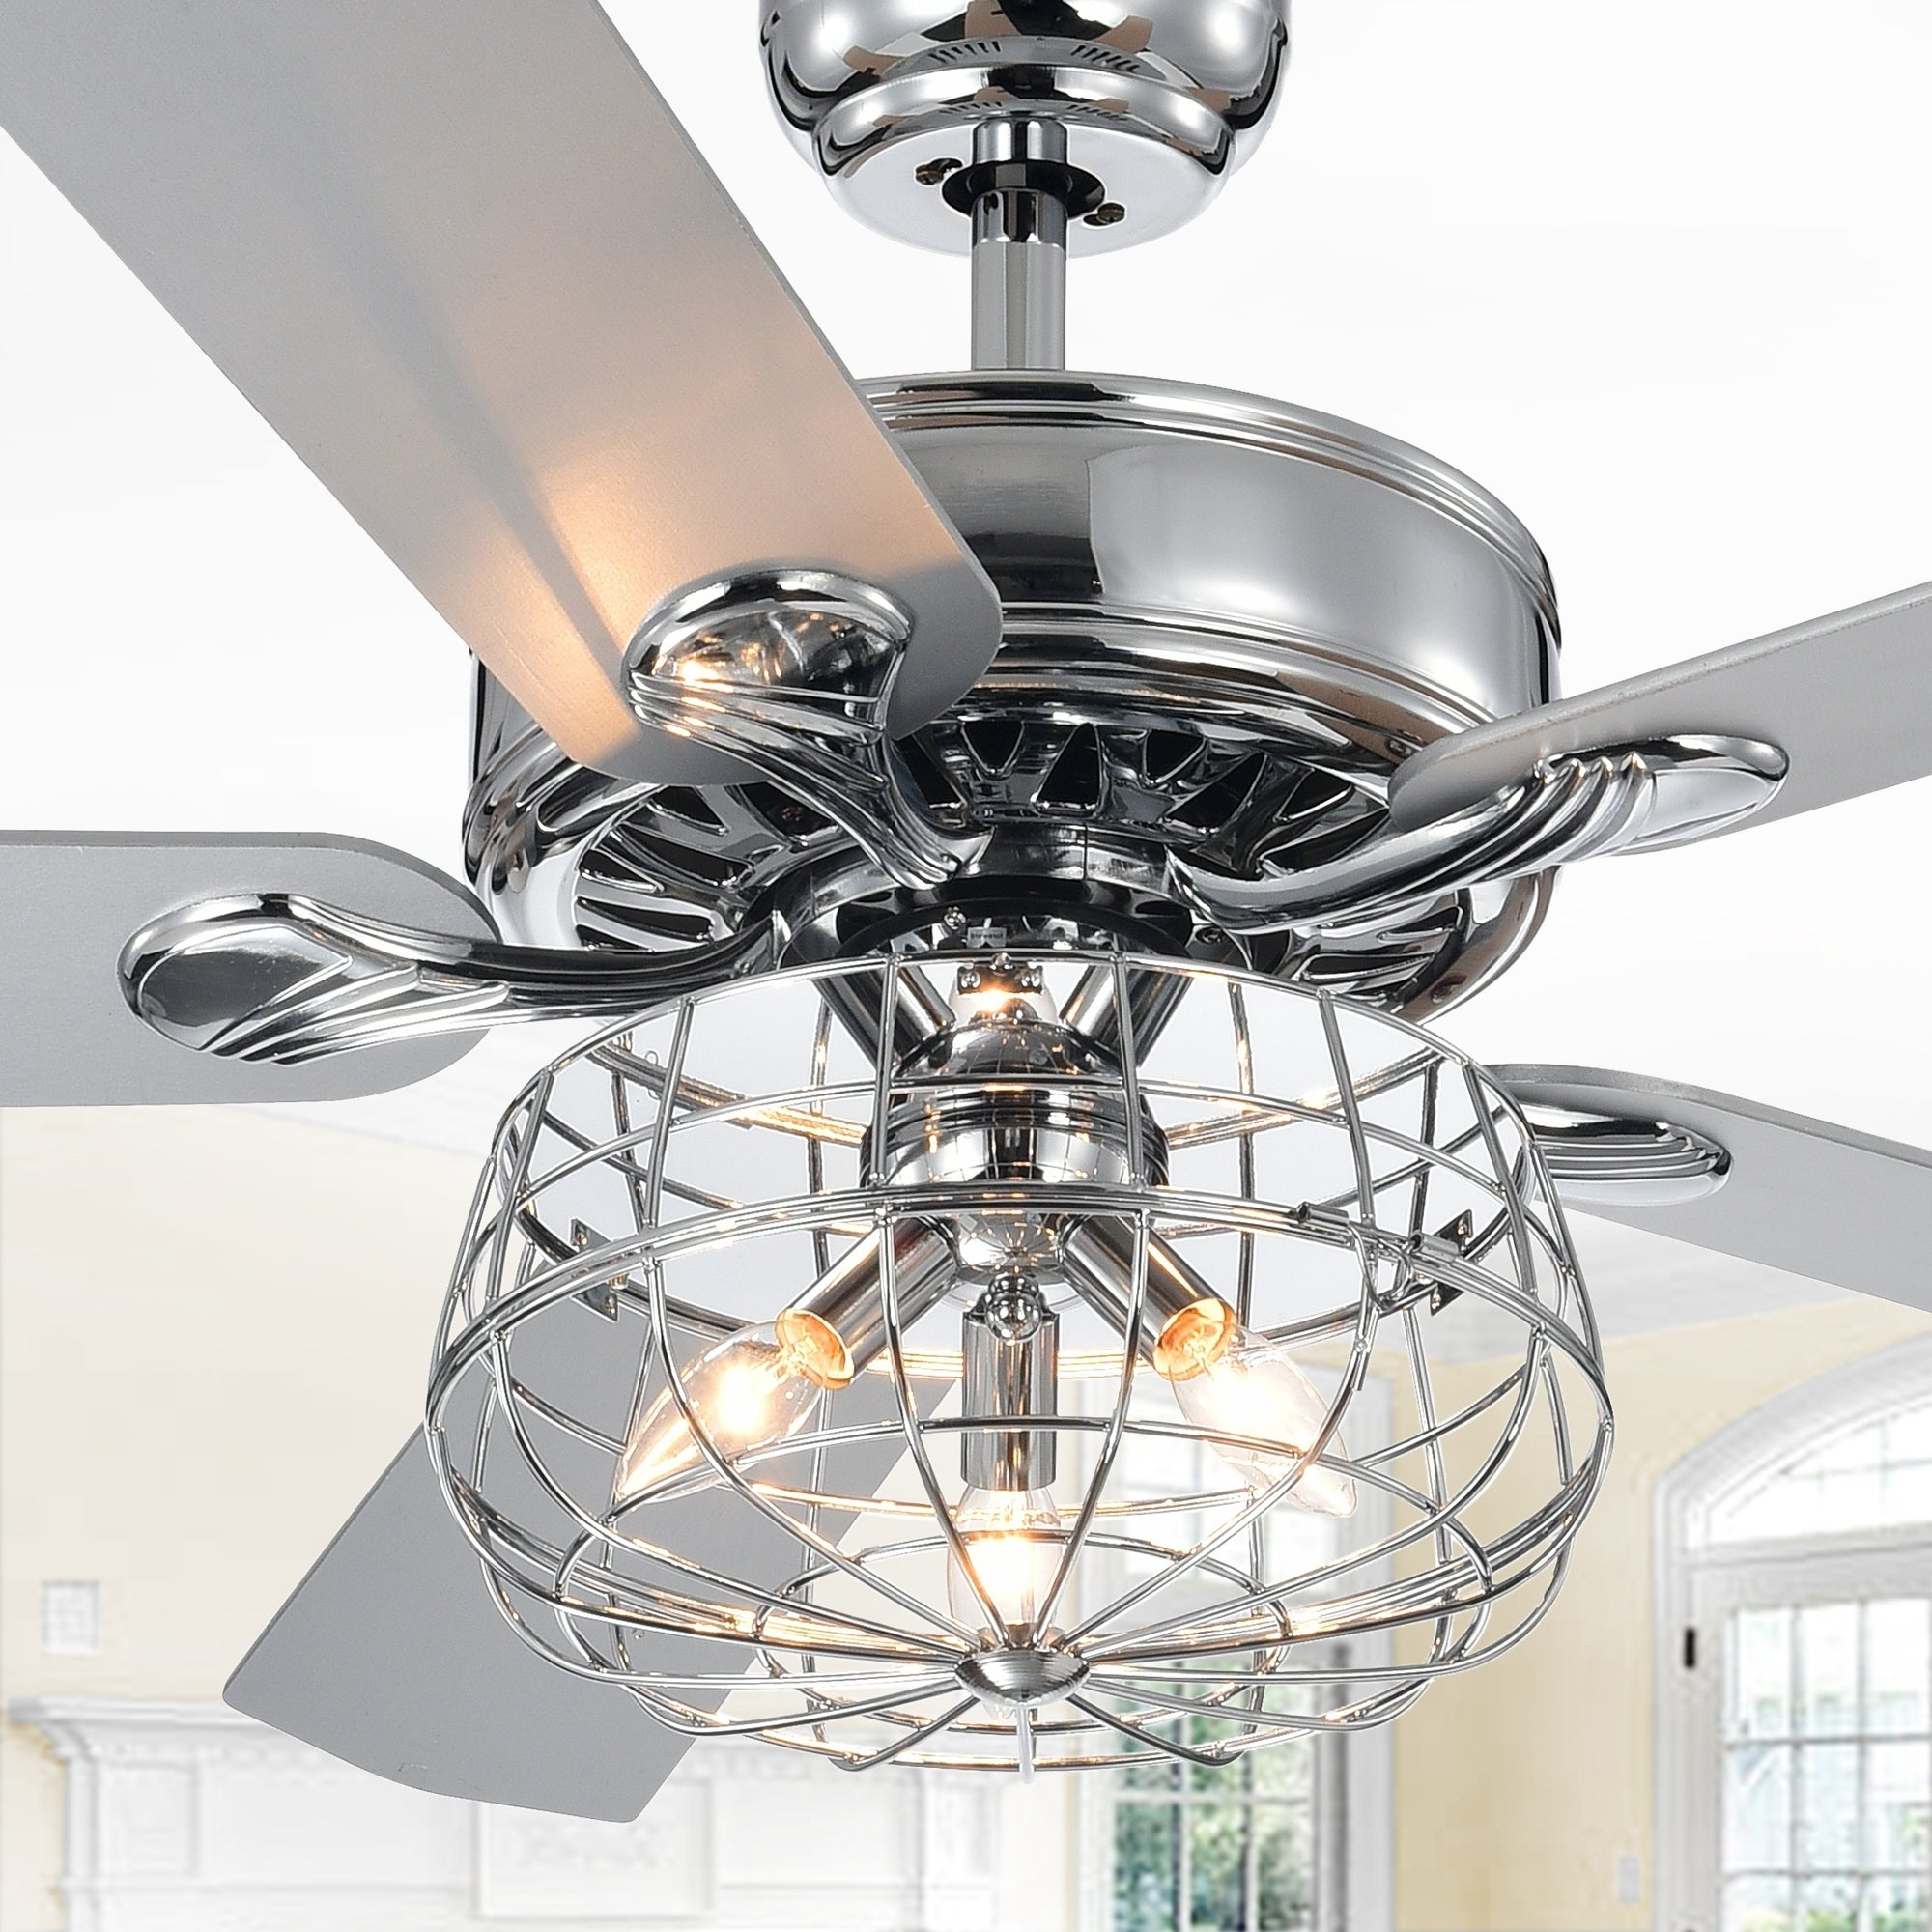 Clybourn 5 Blade Ceiling Fans Pertaining To Recent Imberts Chrome 52 Inch 5 Blade Lighted Ceiling Fan With Cage Chandelier (includes Remote And 2 Blade Color Options) (View 15 of 20)